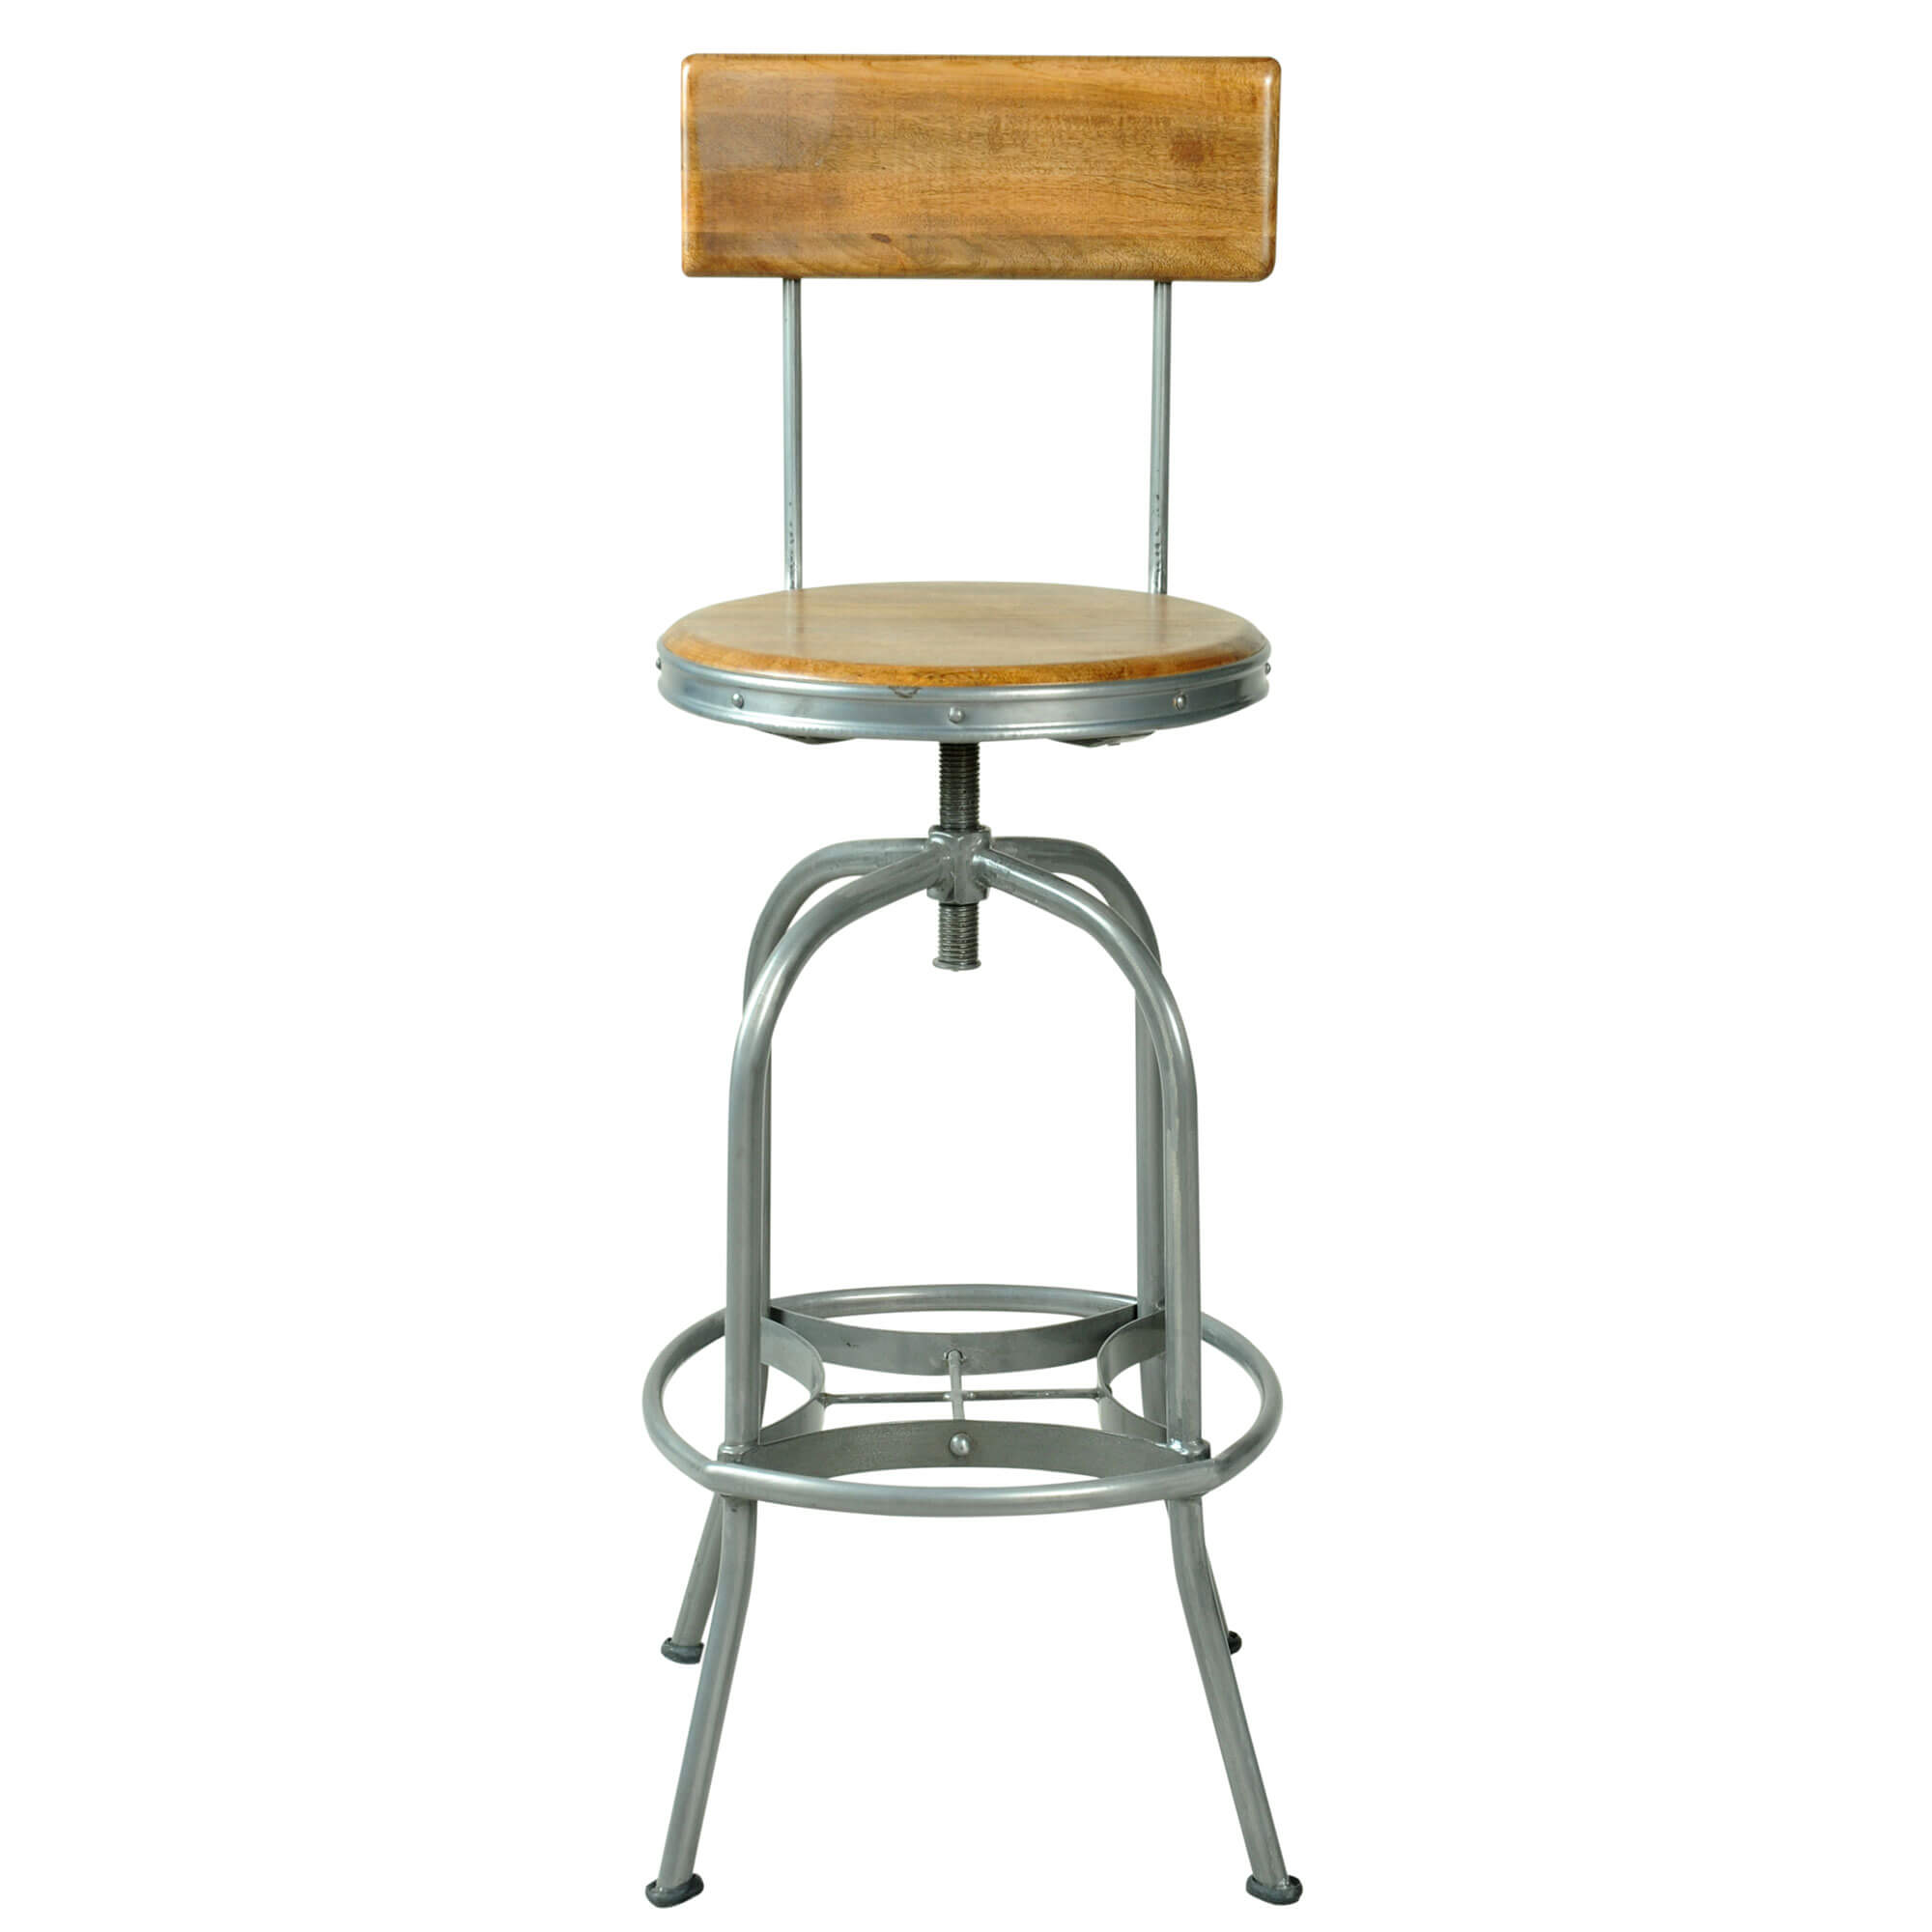 Urban Bar Stool with Back Rest | Solid Wood |